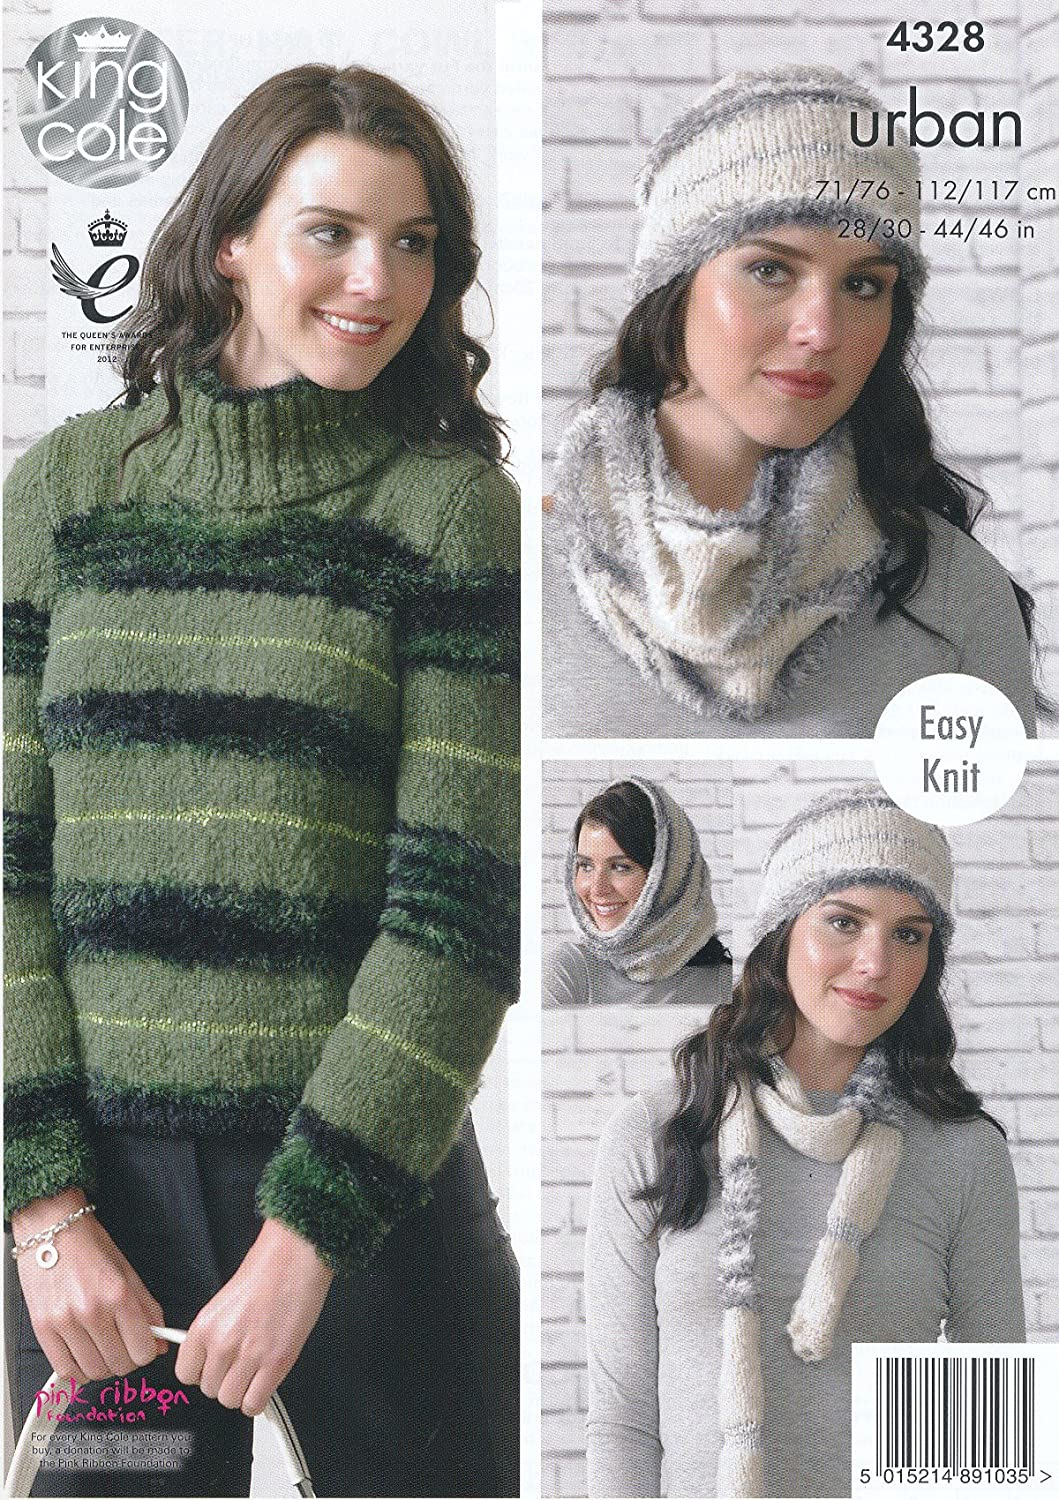 1350b736ef802b King Cole Urban Knitting Pattern Ladies Womens Easy Knit Sweaters Hat Cowl    Scarf (4328)  Amazon.co.uk  Kitchen   Home